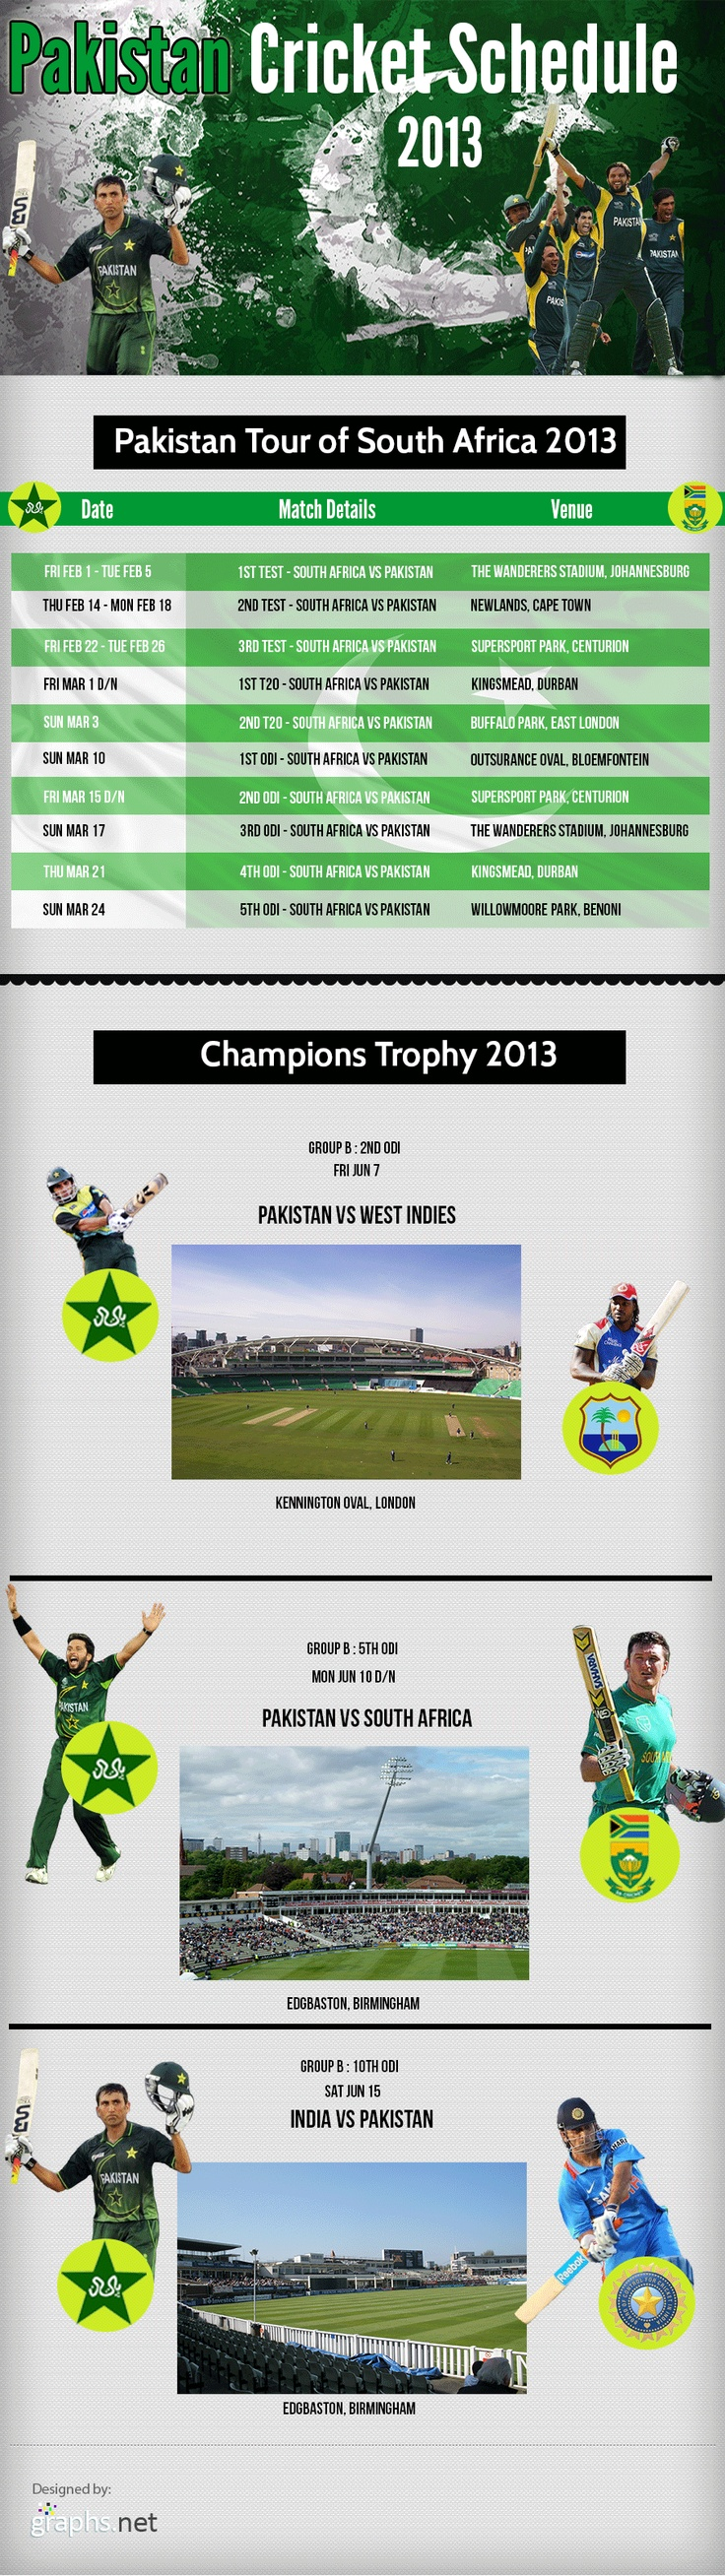 Pakistan Cricket Schedule for the year 2013 #Pakistan #Cricket #Schedule #year #2013 #Sports #Infographics